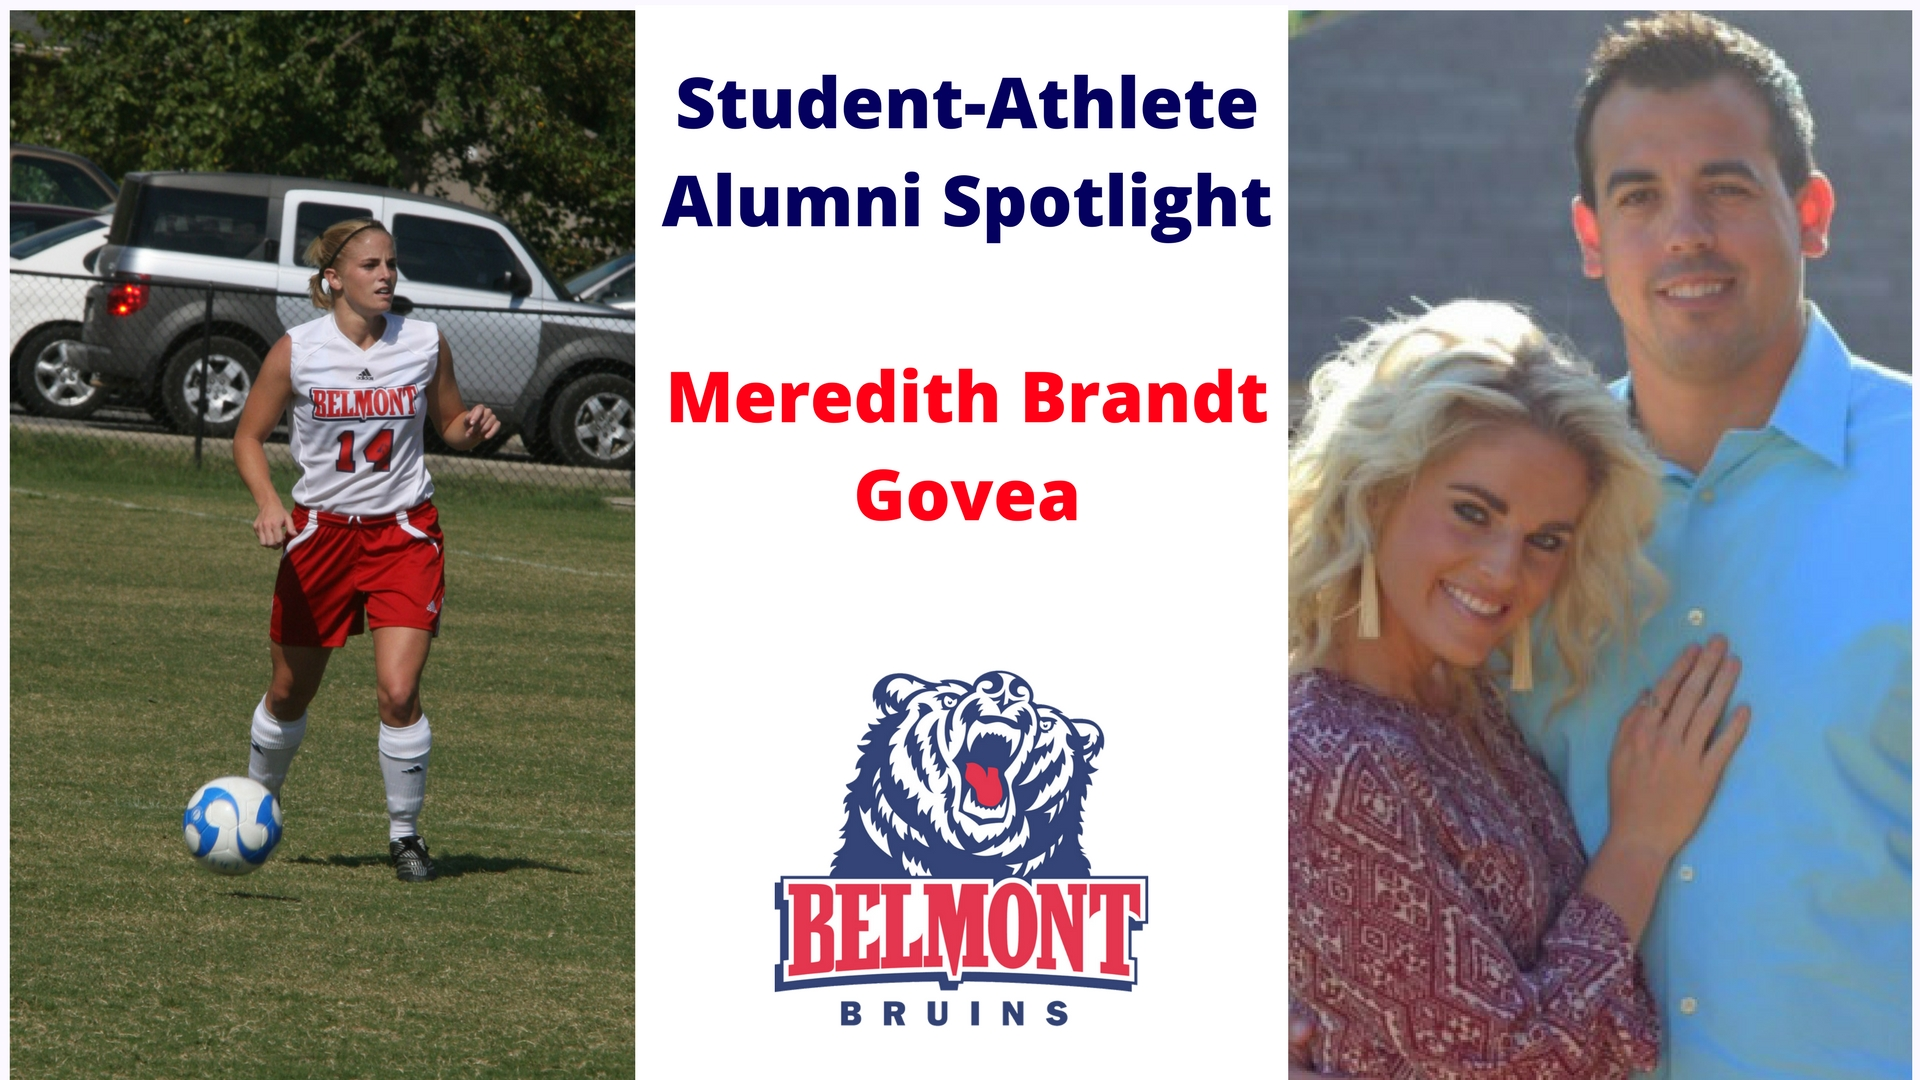 Student-Athlete Alumni Spotlight -- Meredith Brandt Govea